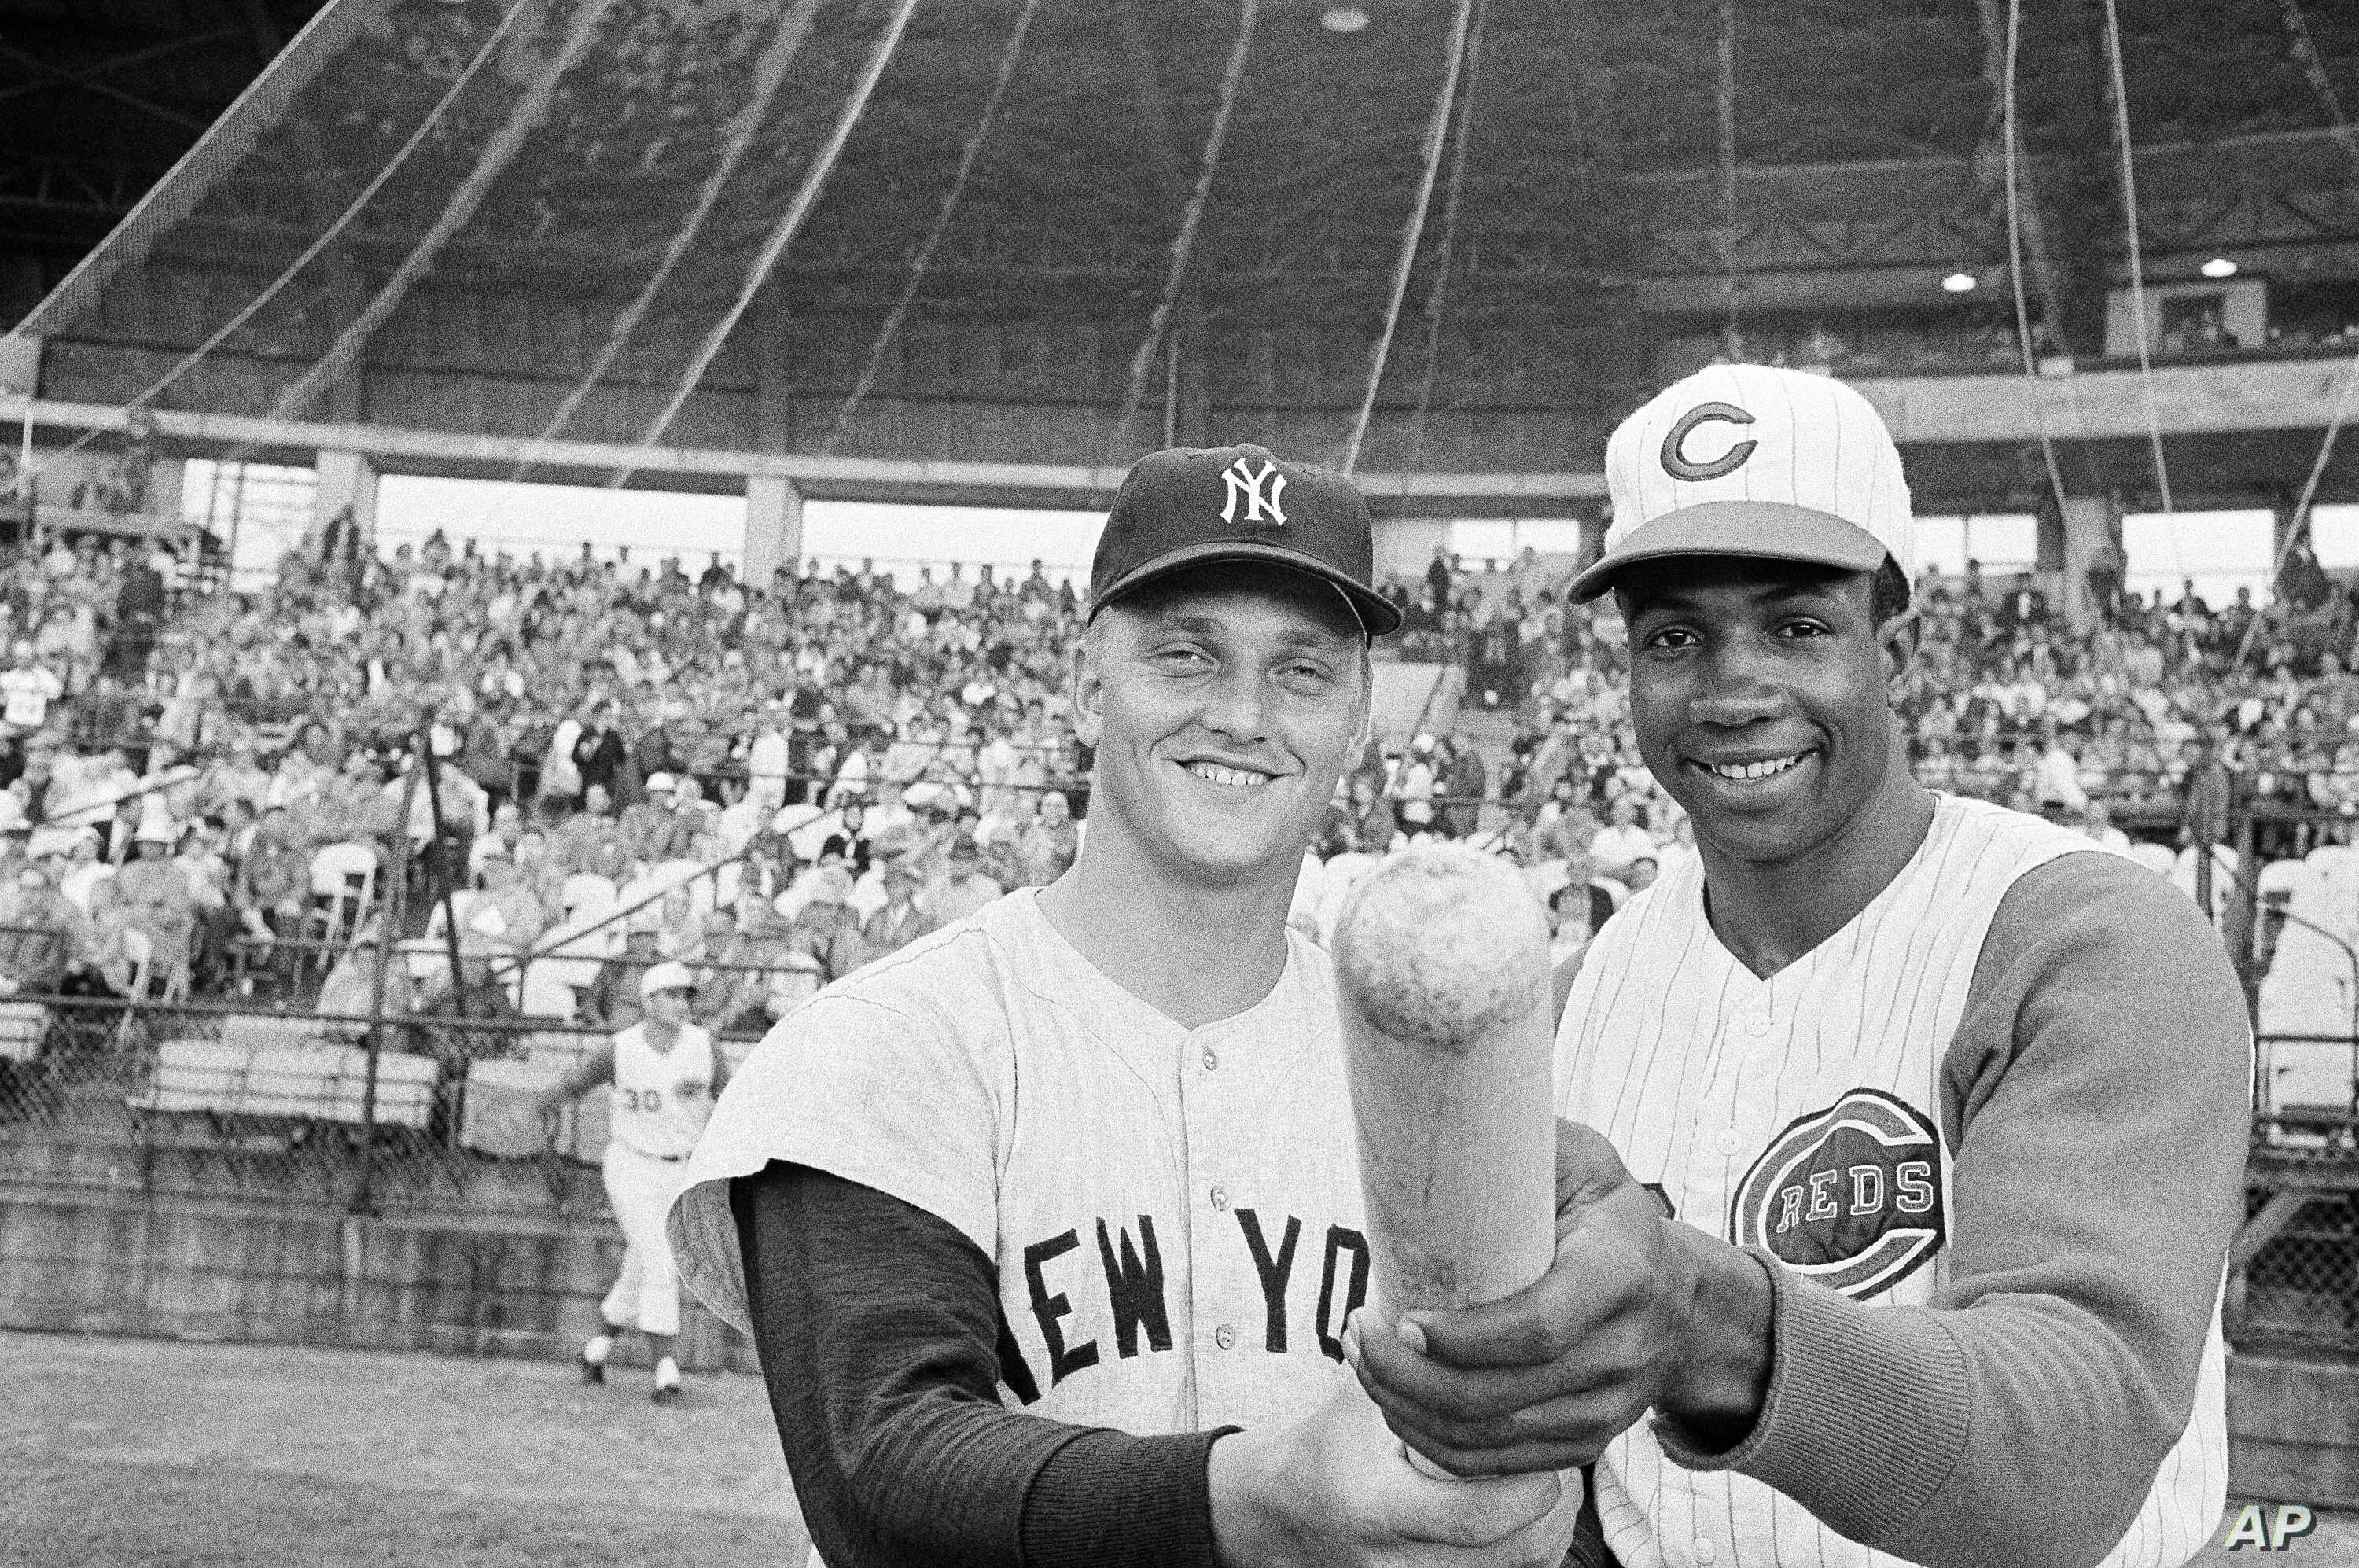 Roger Maris of the N.Y Yankees and Frank Robinson of the Cincinnati Reds pose before an exhibition game in Tampa, Florida, March 26, 1962. Maris was voted the MVP in the American League and Frank Robinson received the National League's award.